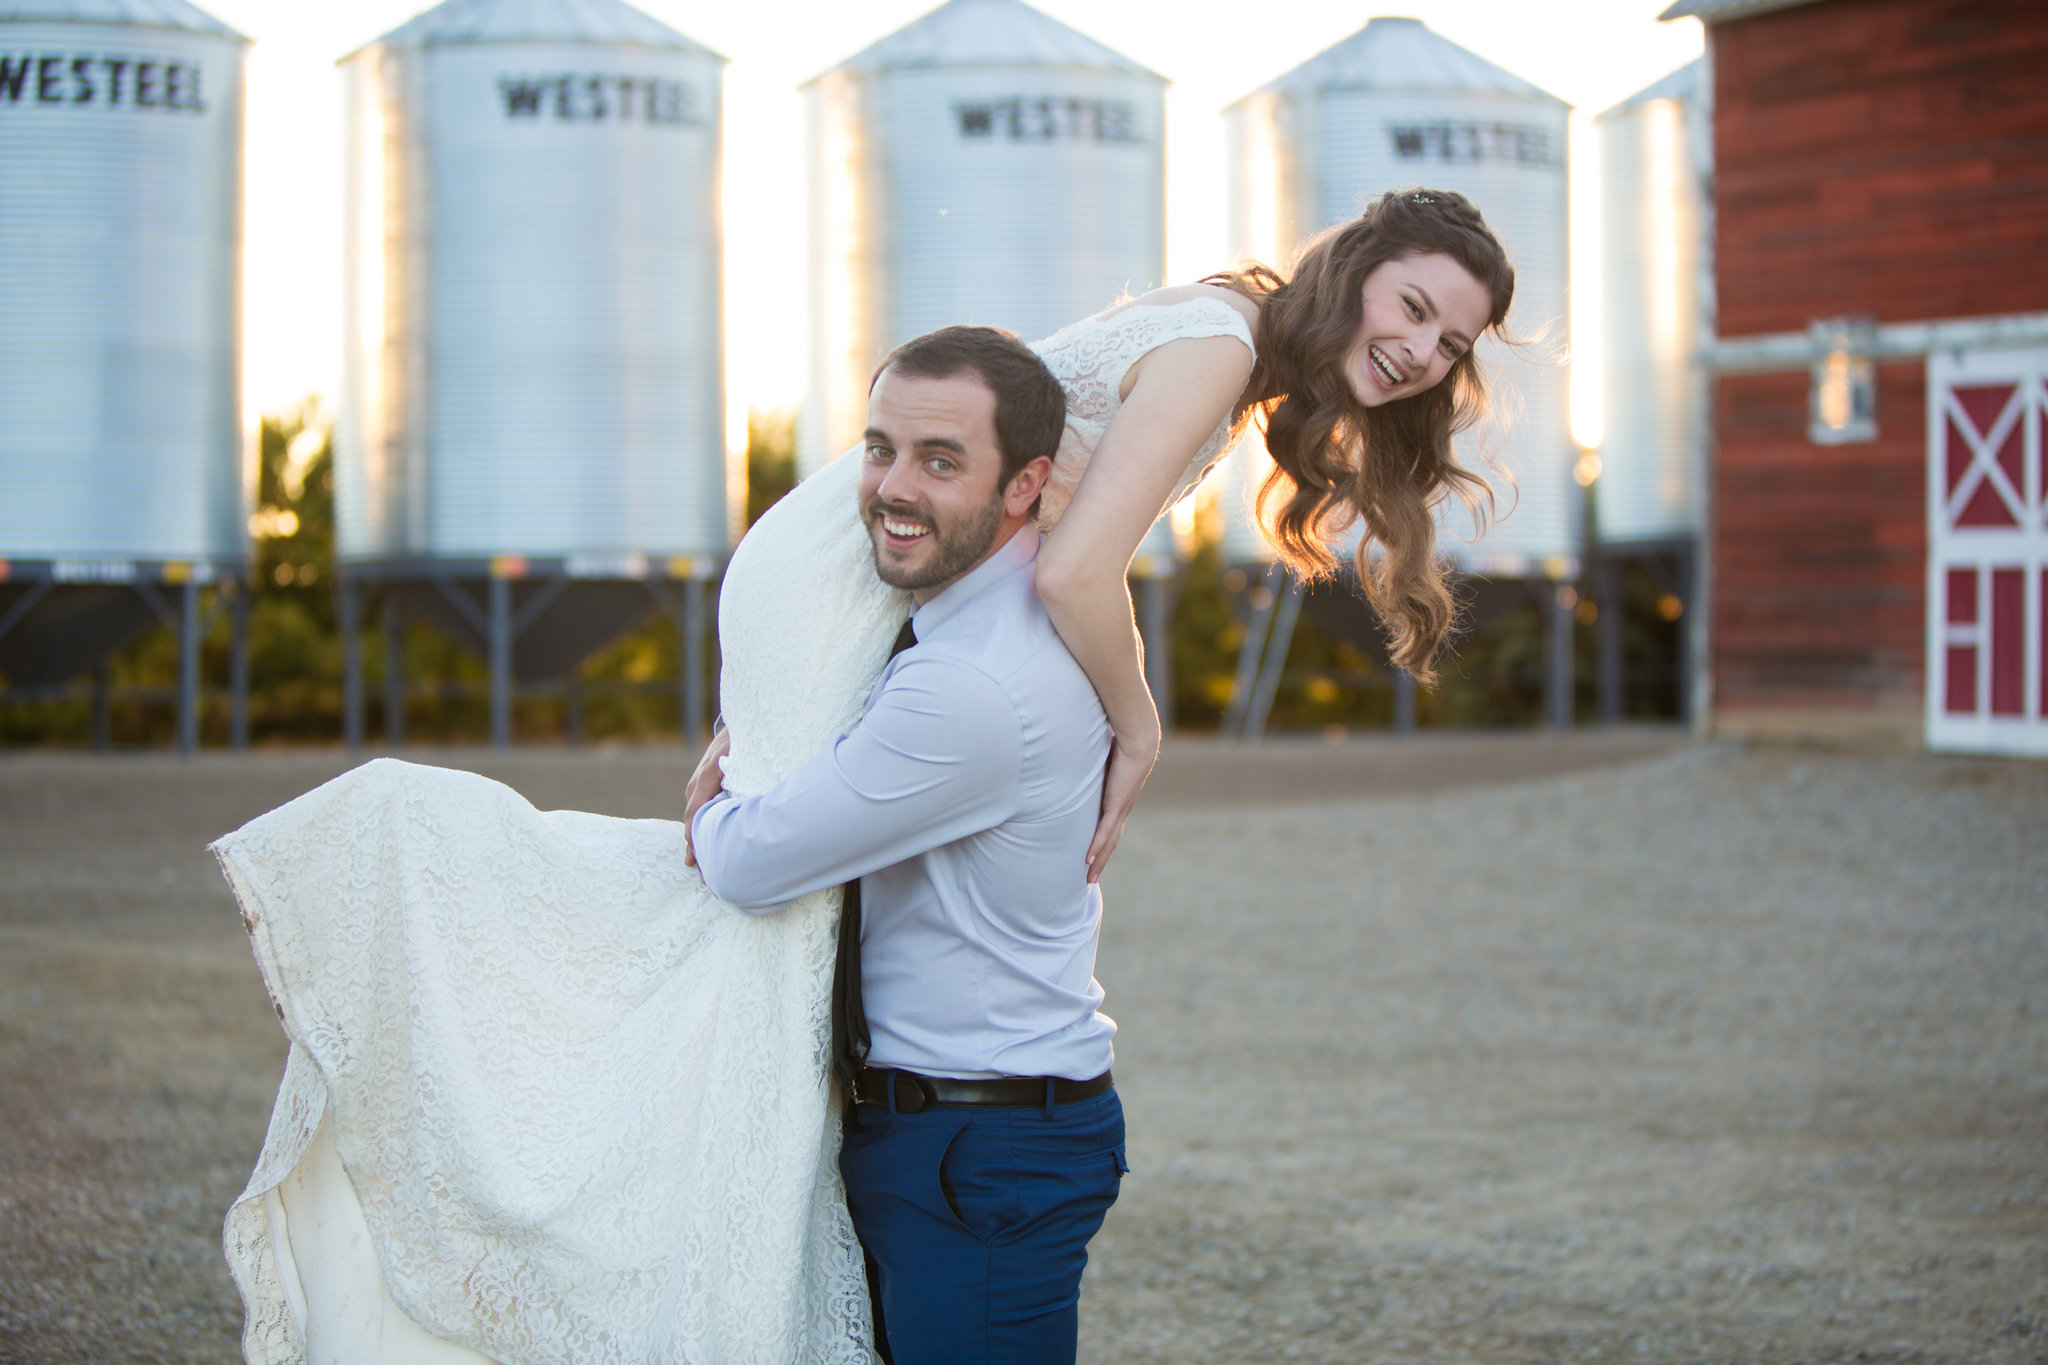 Chasing Autumn Photography - Medicine Hat Photography, Swift Current Wedding Photography, Saskatchewan Wedding Photography, Alberta Wedding Photography, Barn Wedding, Lethbridge Wedding Photography